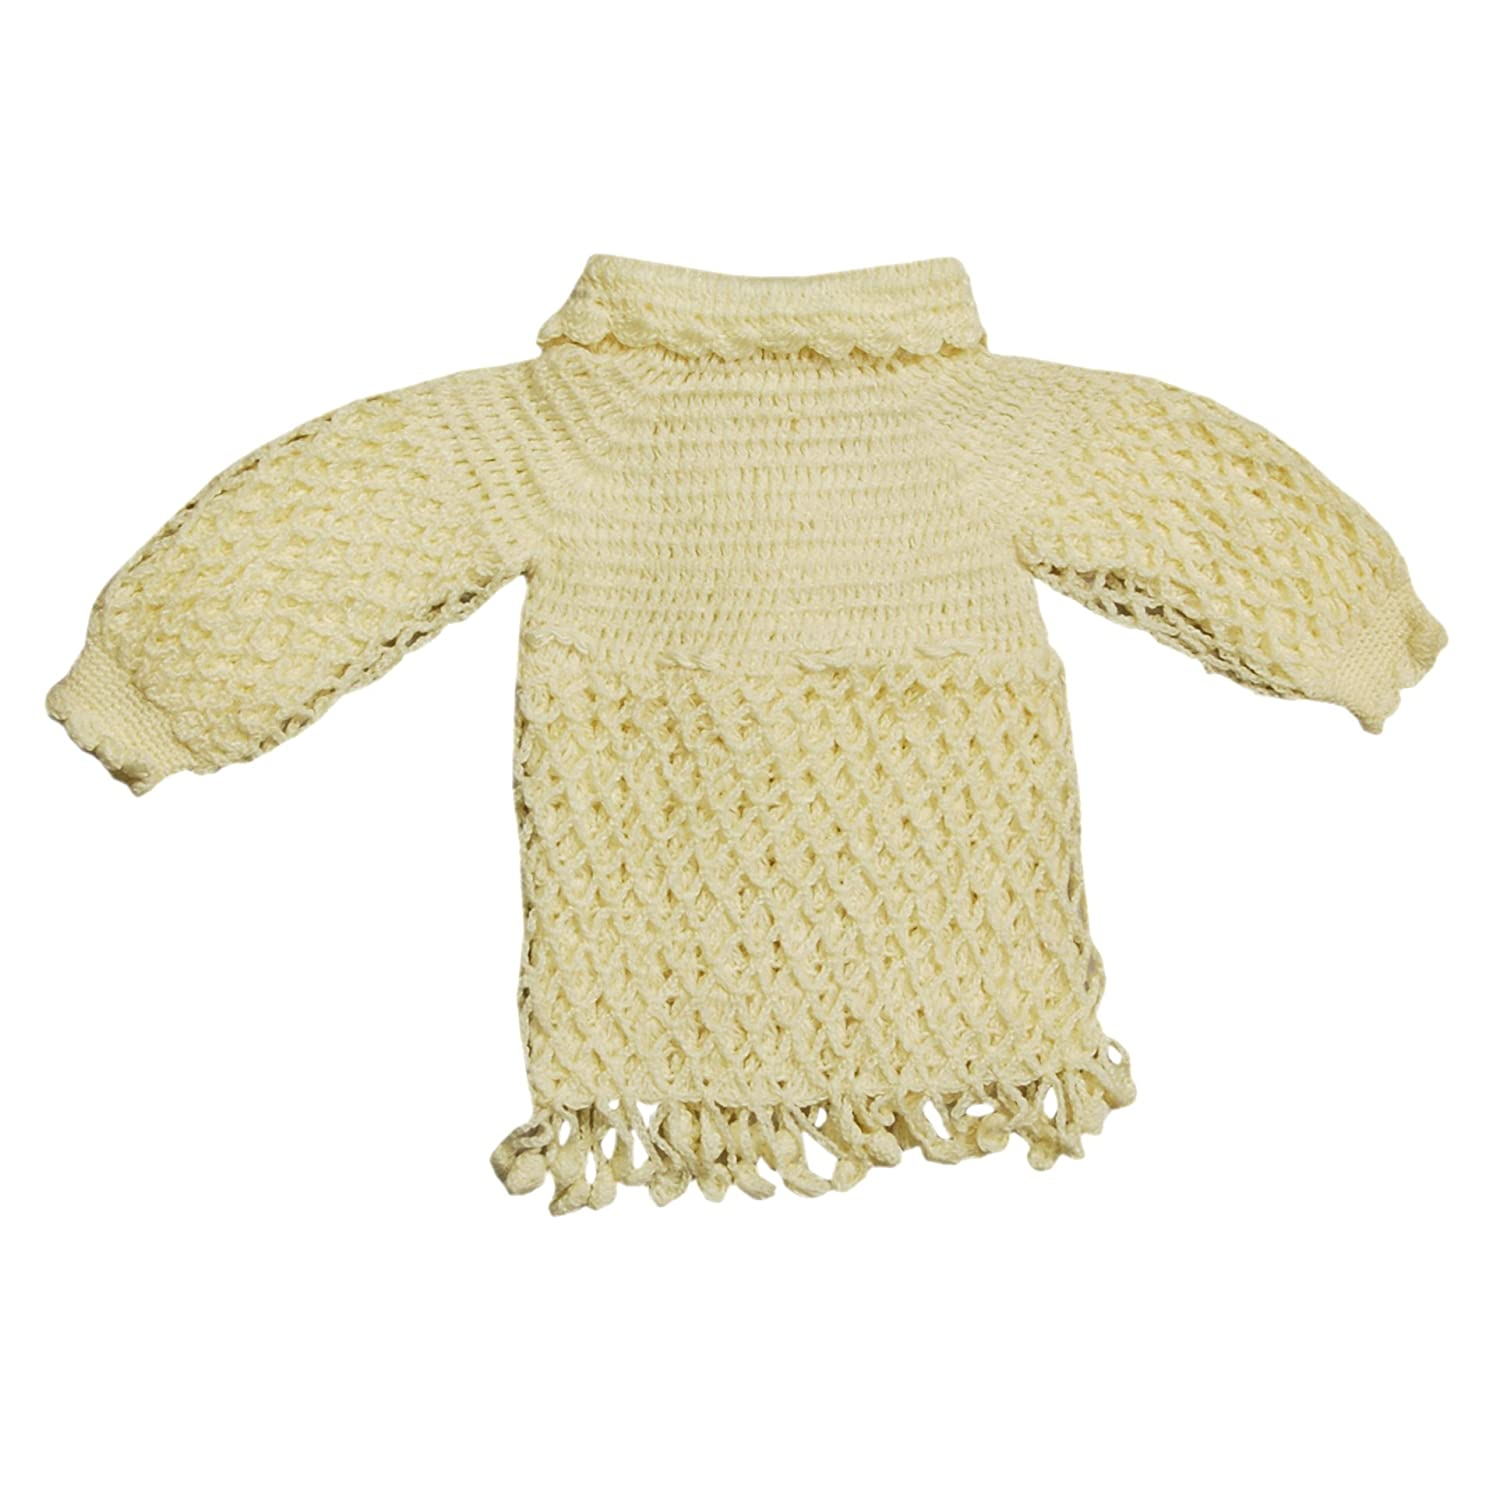 baf02712b Saloni Woollen Baby s Girl s Wool Sweater Winter Wear Skirt or Frock ...